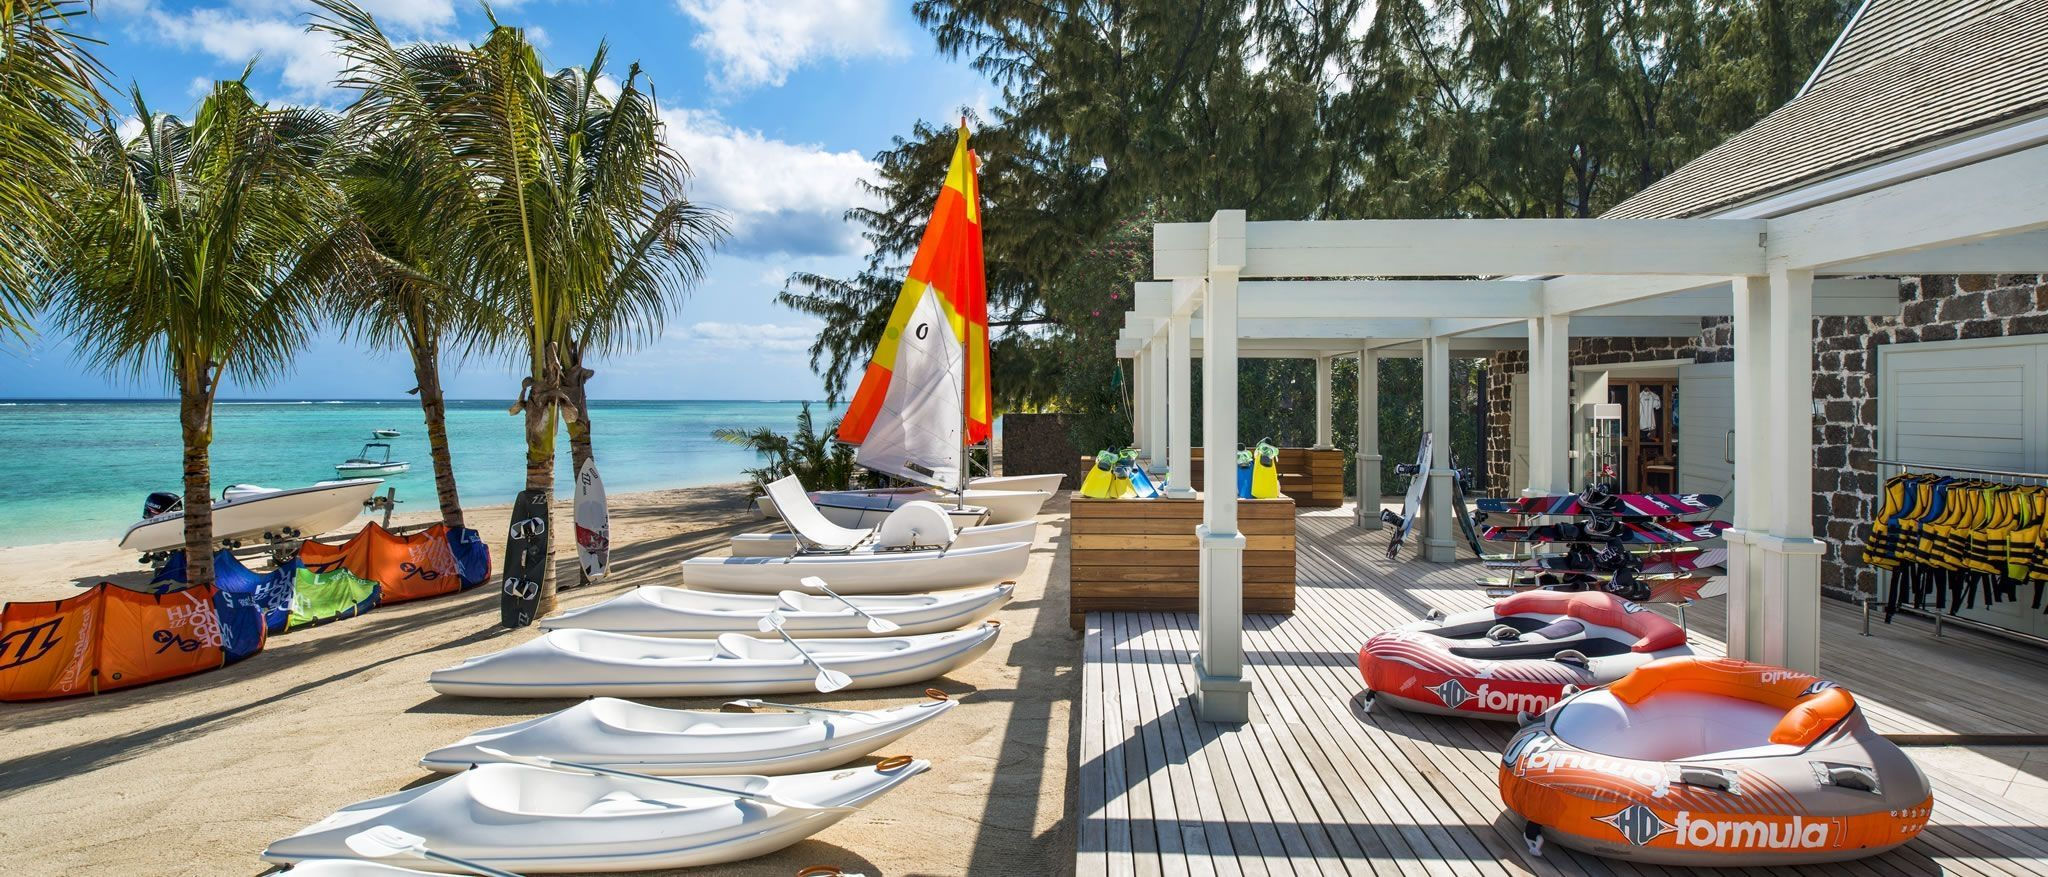 St. Regis Mauritius Resort Watersports Centre